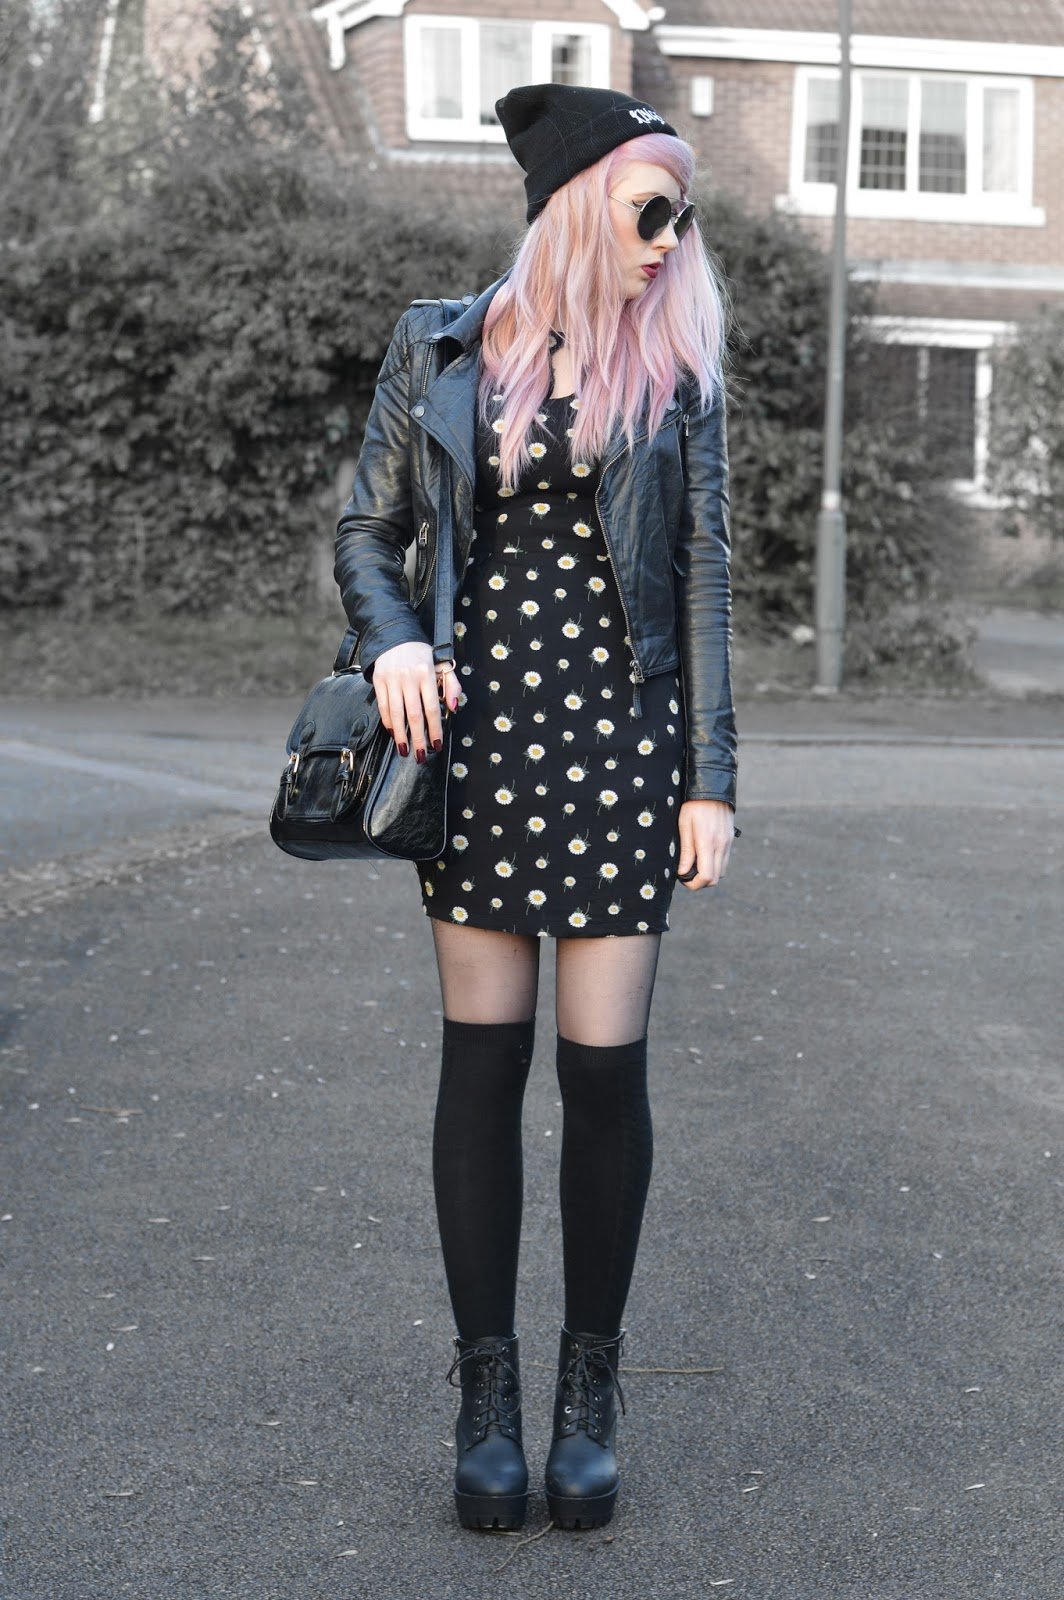 How To Wear Grunge Fashion For Fall u2013 LUULLAu0026#39;S BLOG